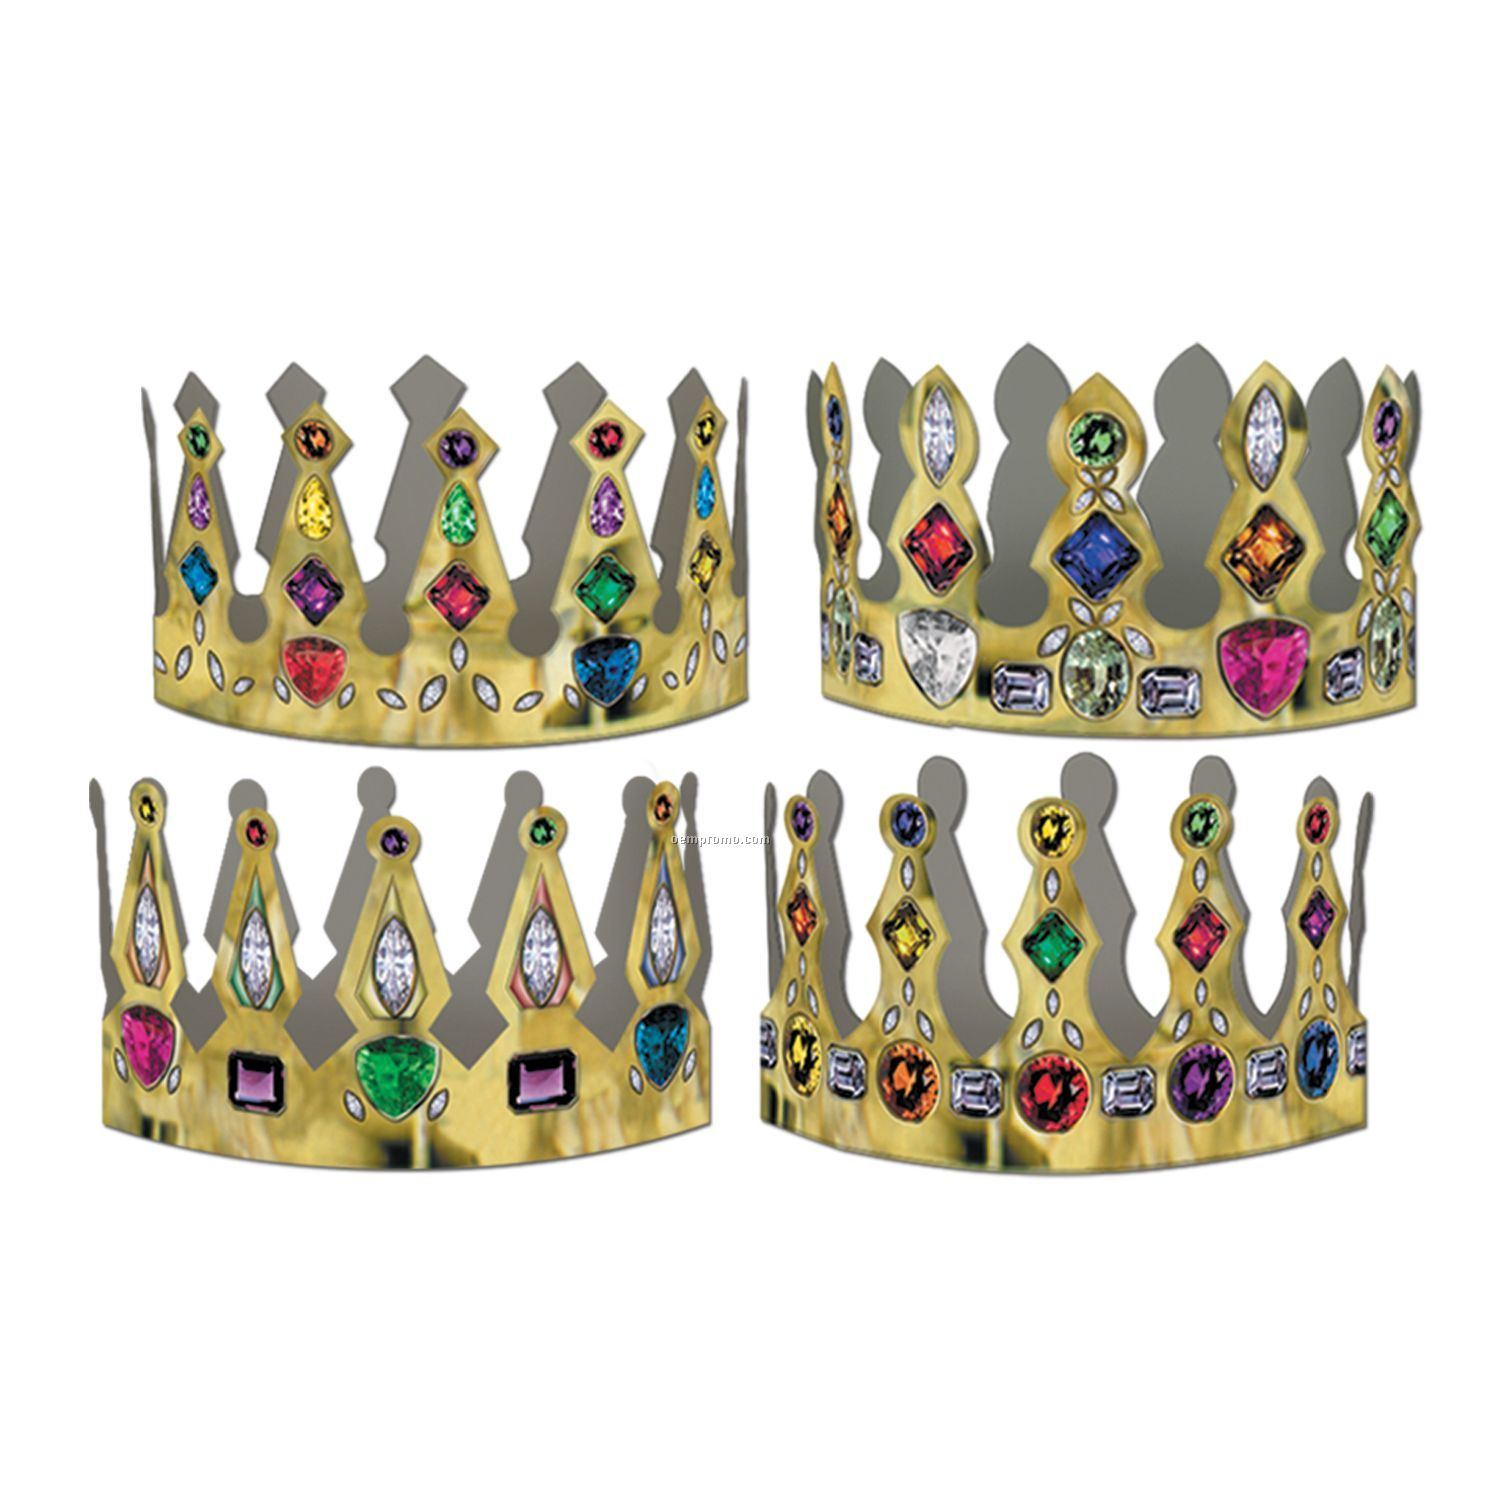 Printed Jeweled Crowns